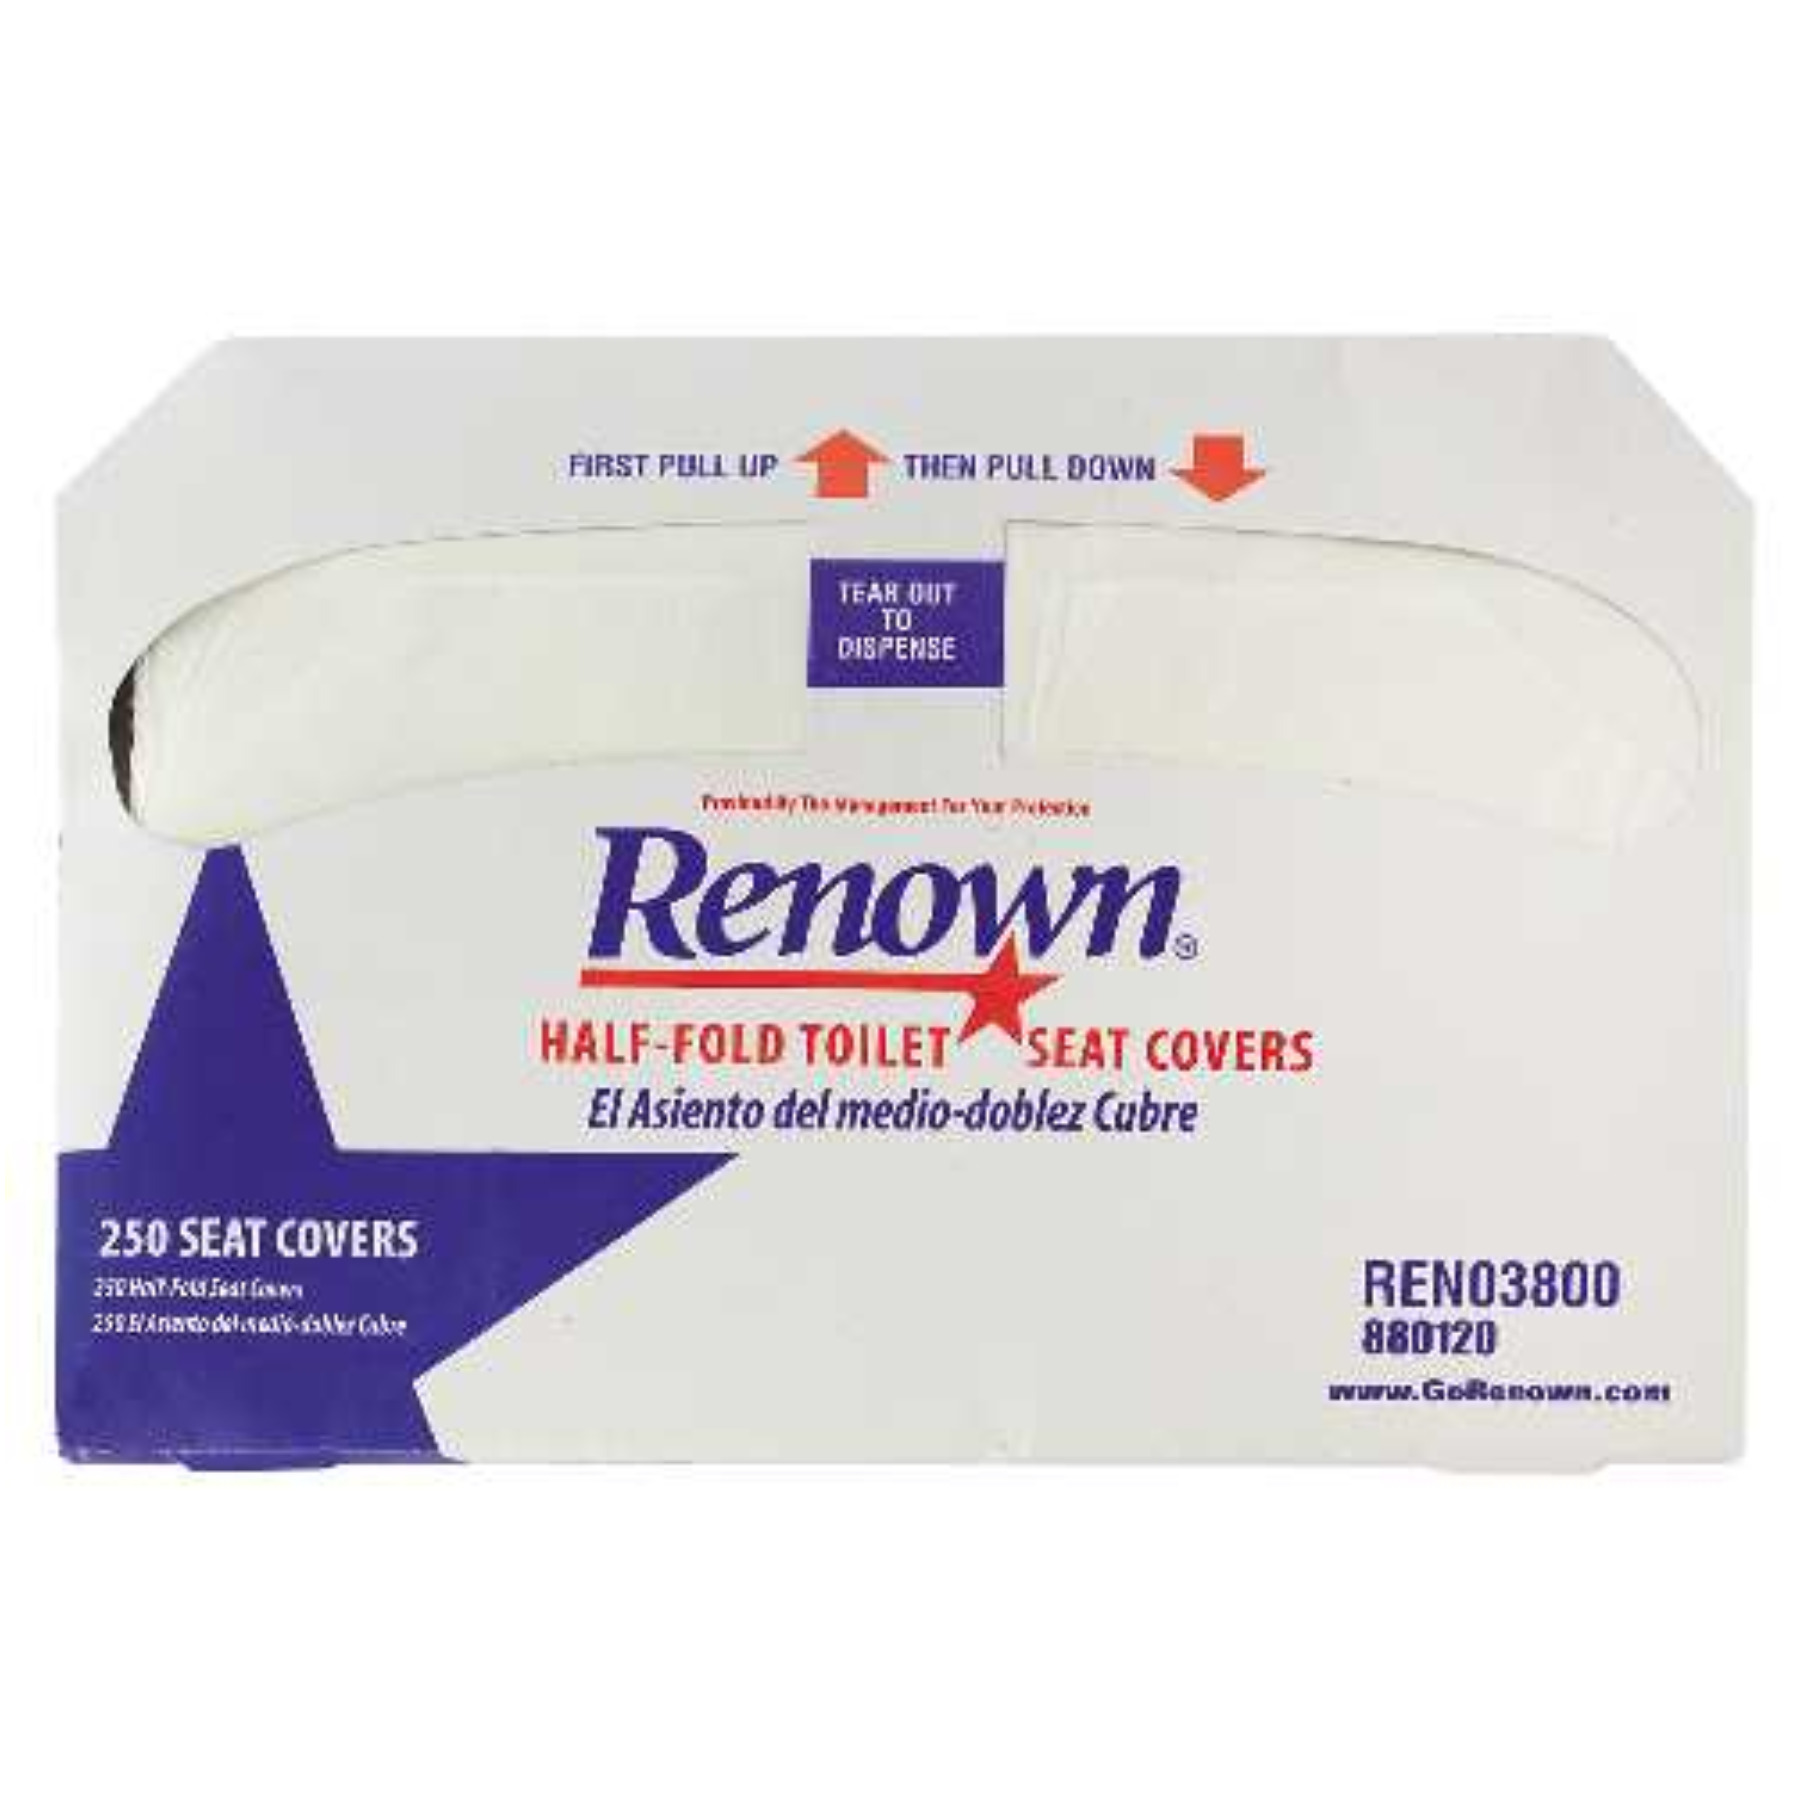 RENOWN� HALF-FOLD TOILET SEAT COVERS, 250 SHEETS PER PACK, 20 PACKS PER CASE